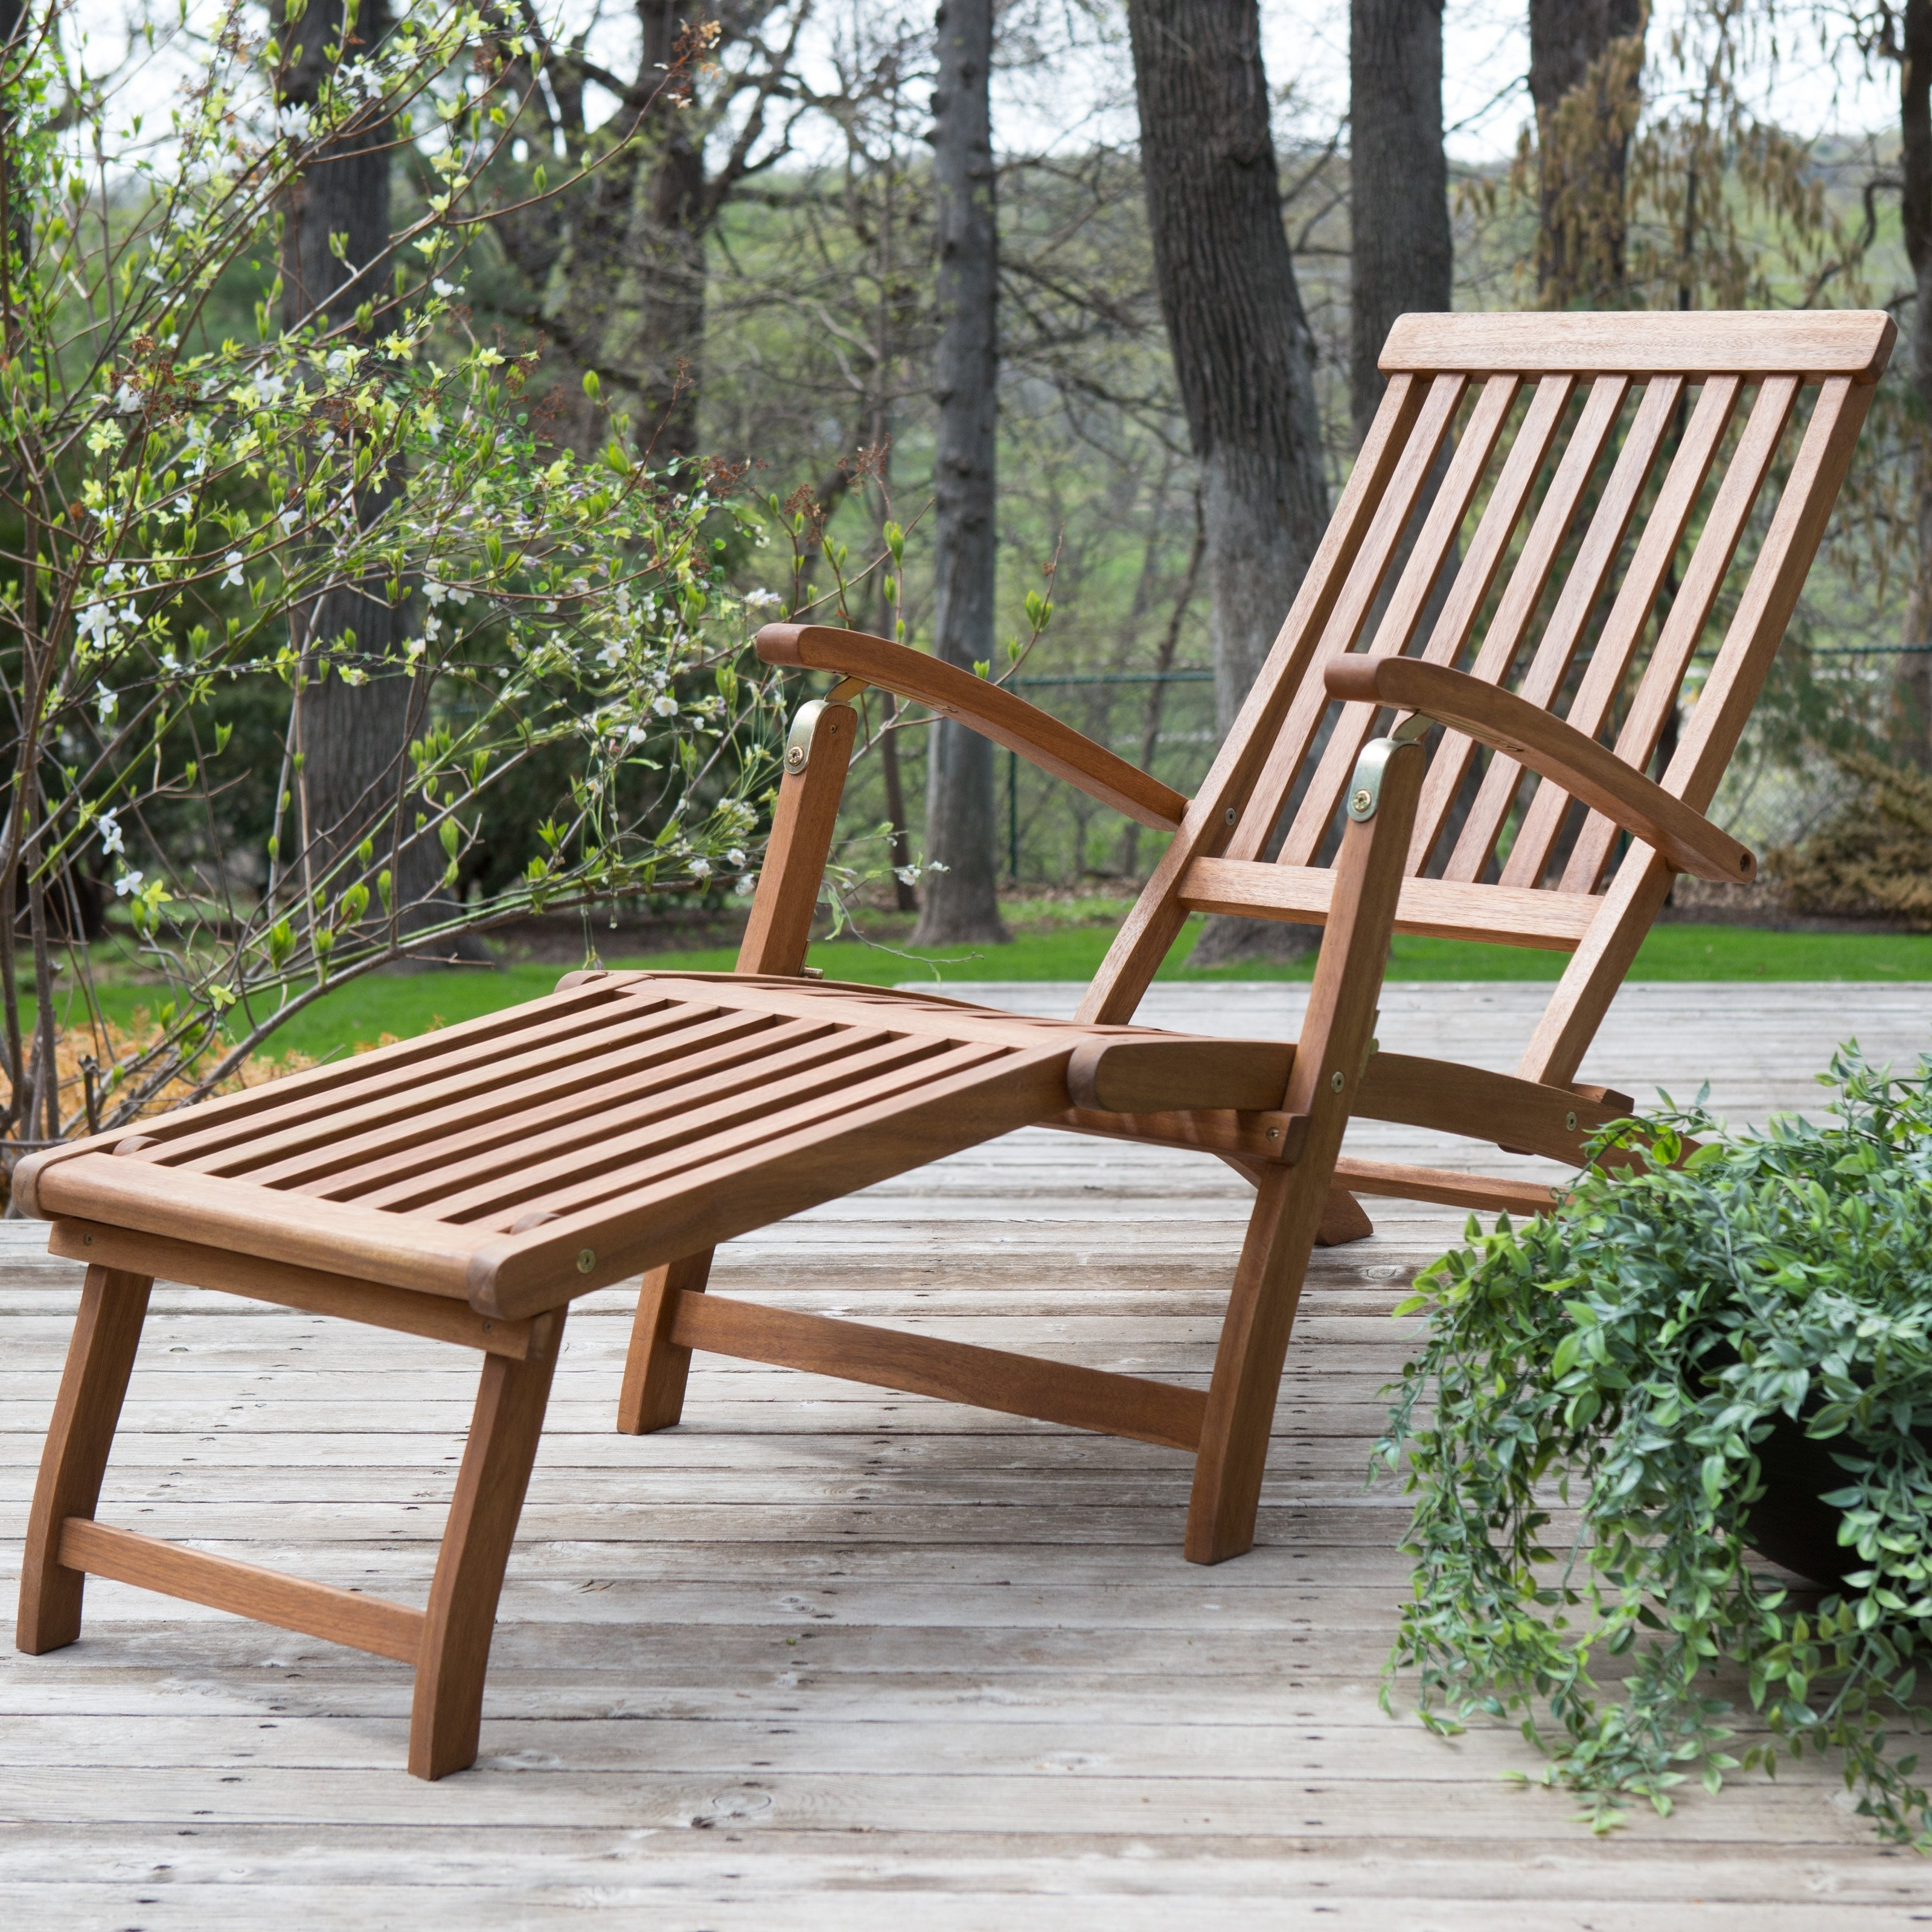 Best Selling Home Decor Molokini Wood Outdoor Chaise Lounge—Set Of Inside Latest Wooden Chaise Lounges (View 4 of 15)